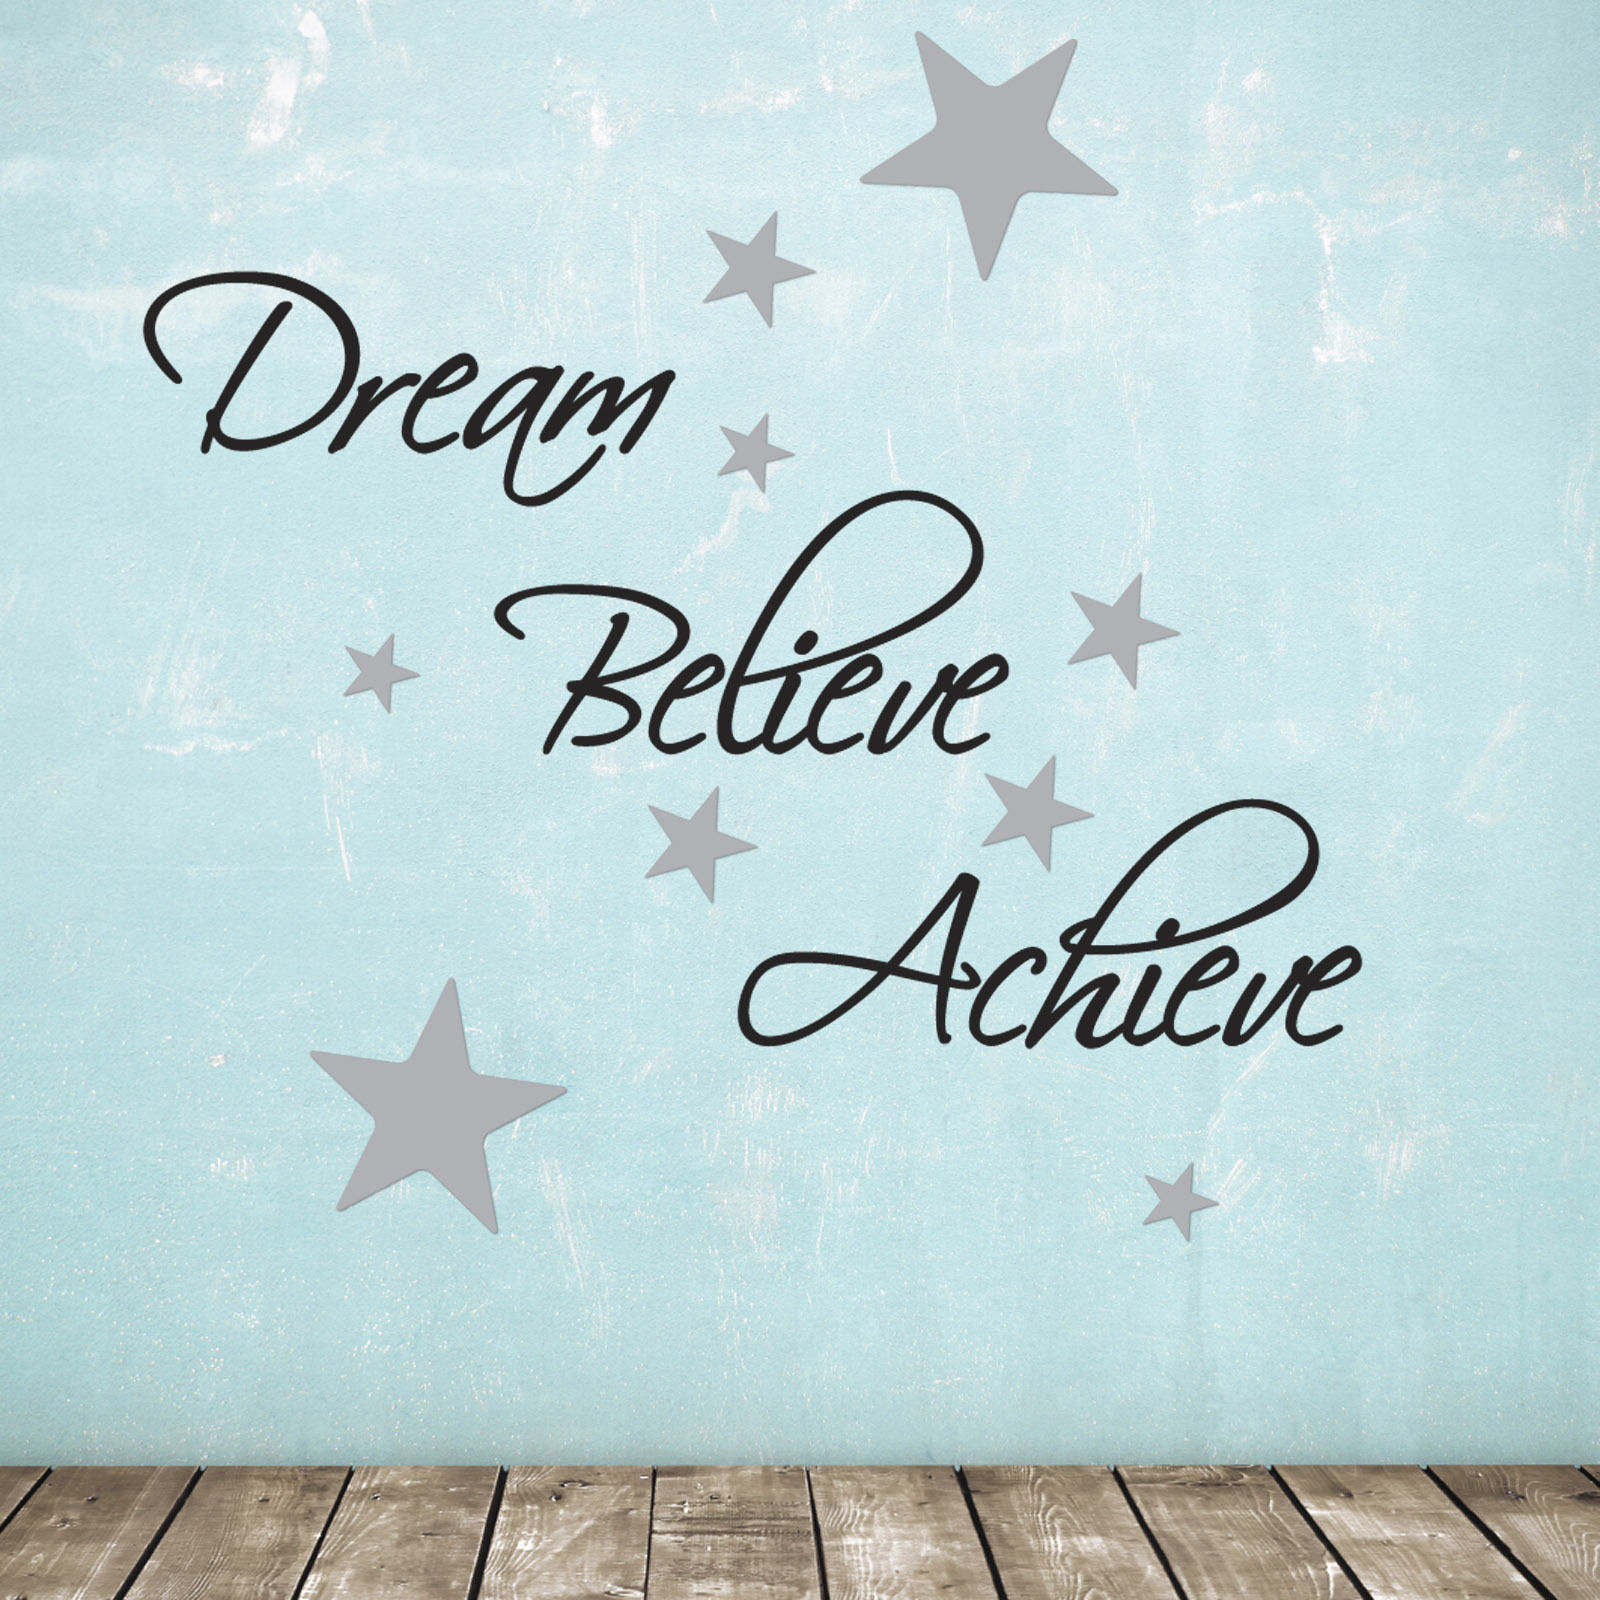 Stickers On Wall For Bedroom Dream Believe Achieve Wall Sticker Pack Includes 60